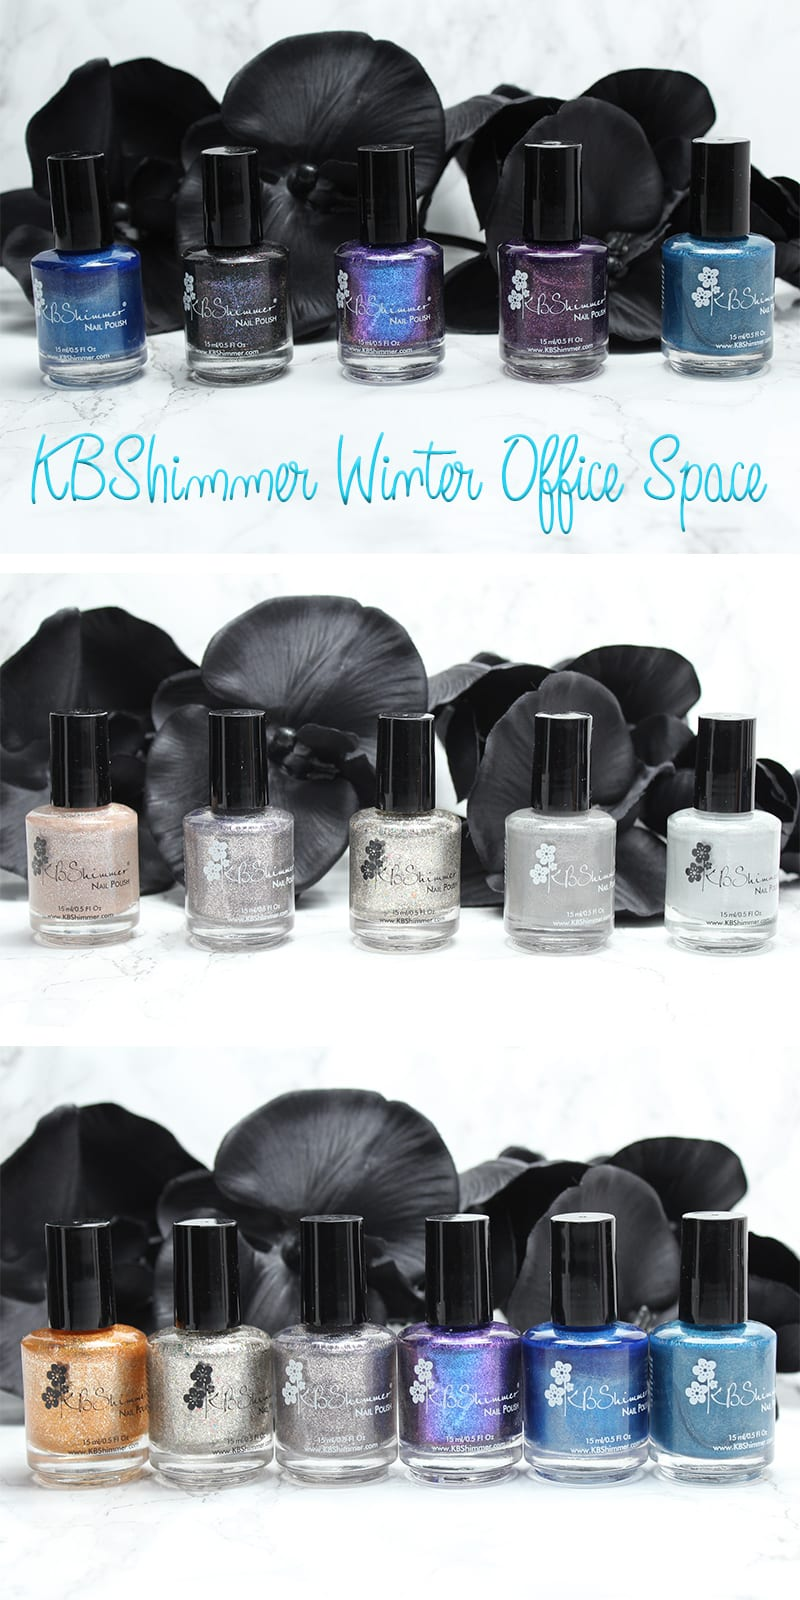 KBShimmer Winter Office Space Collections Review, Swatches